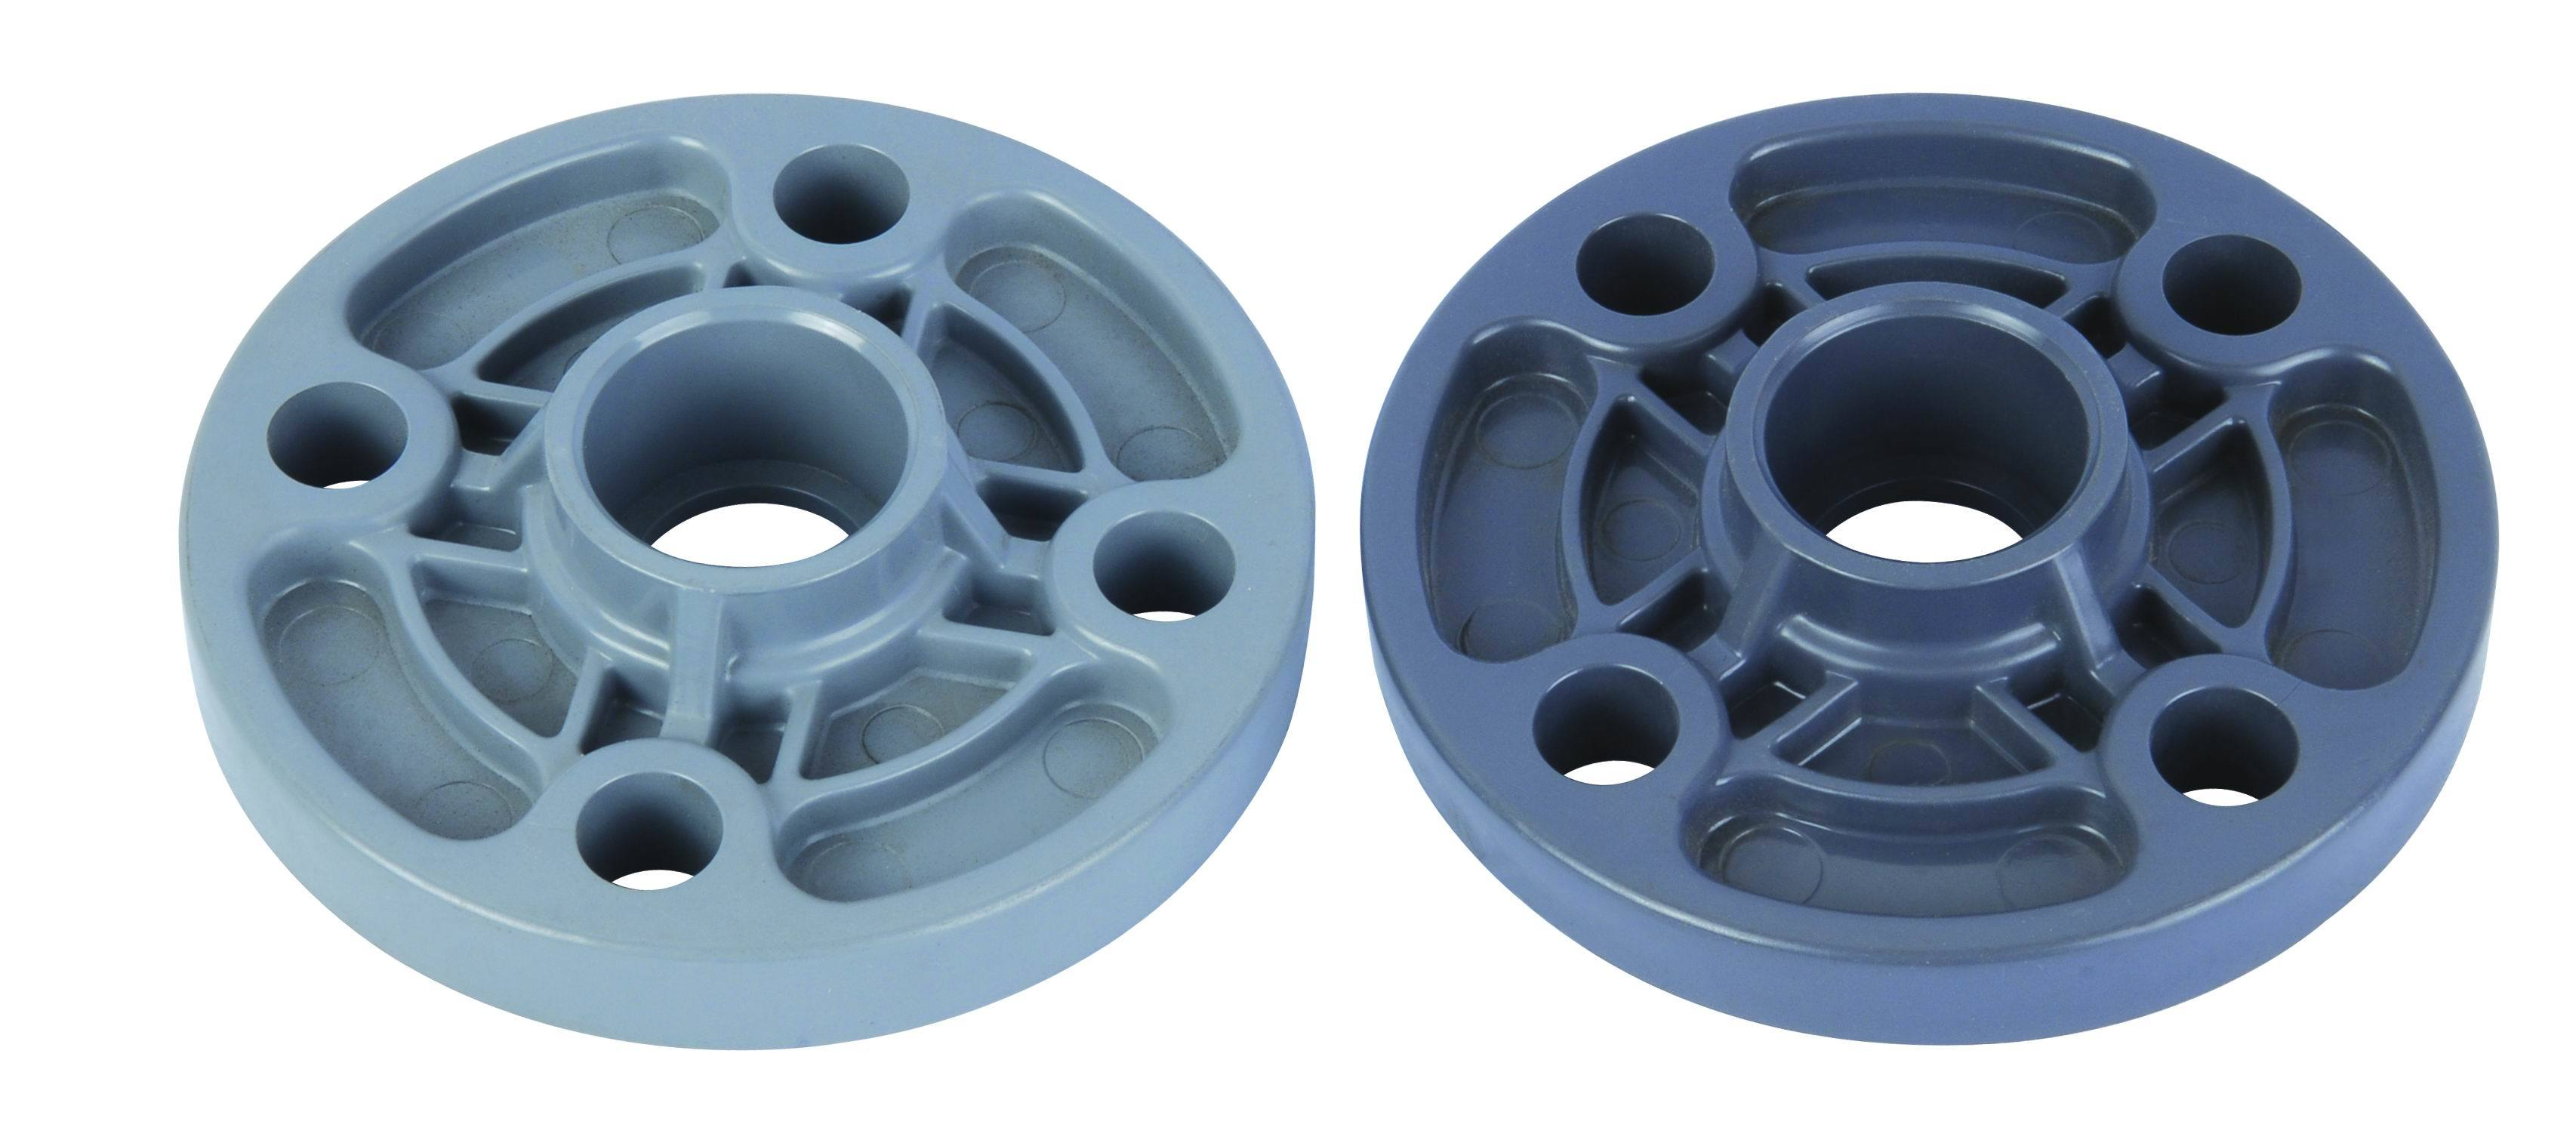 Cpvc flange mould products manufacturers